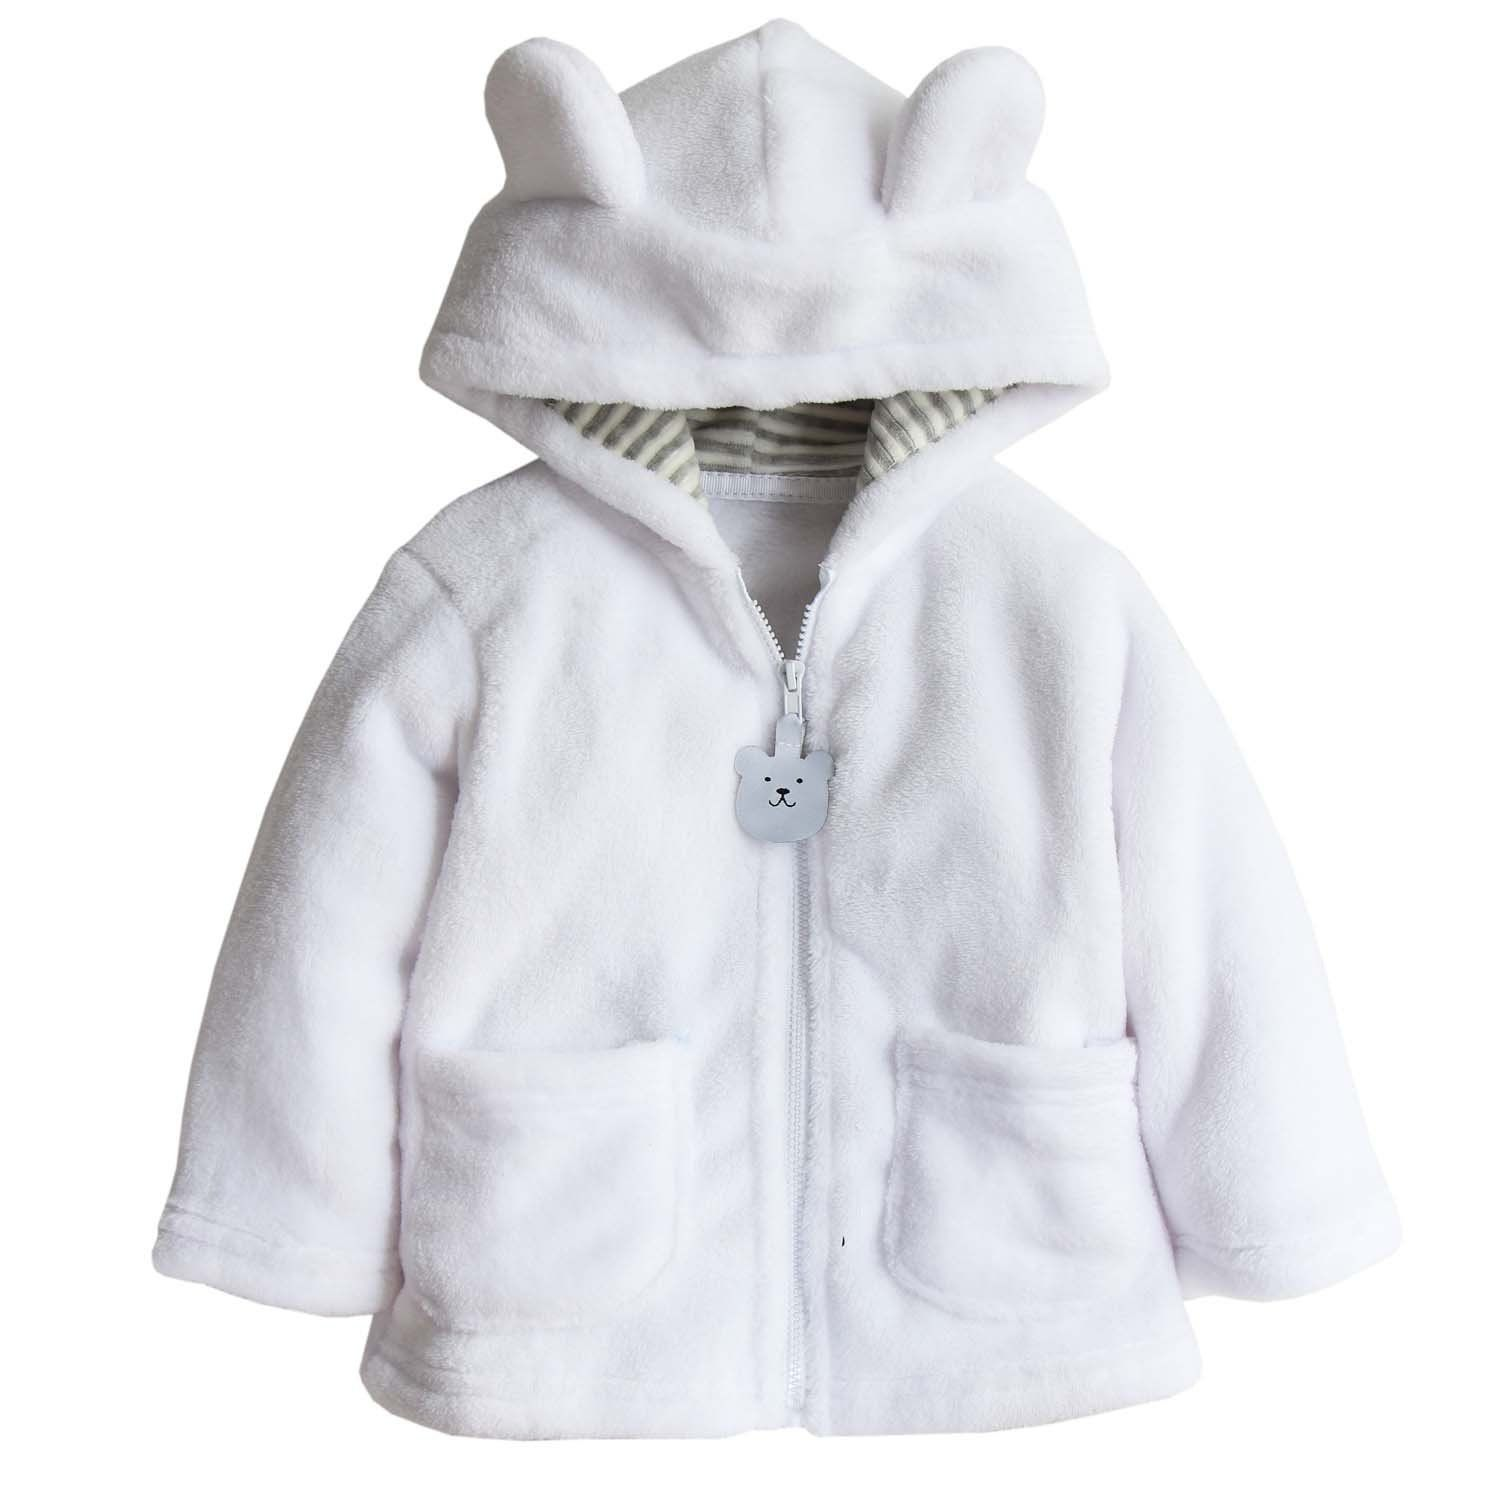 014e827abe11 Toddler Baby Boys Girls Cartoon Fleece Hooded Jacket Coat with Ears ...